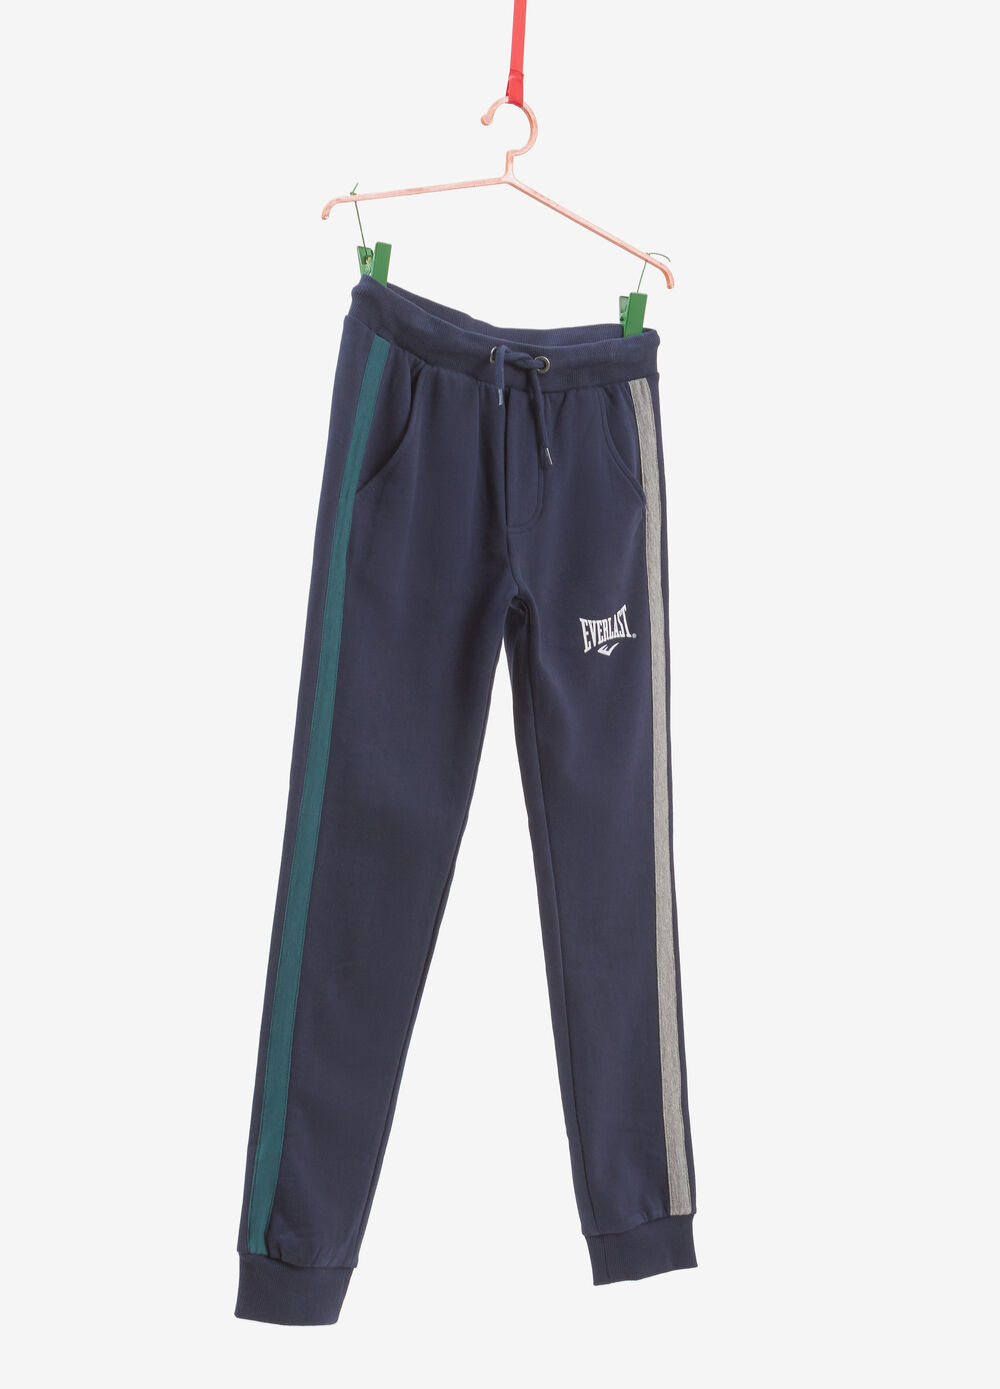 Everlast trousers in 100% cotton